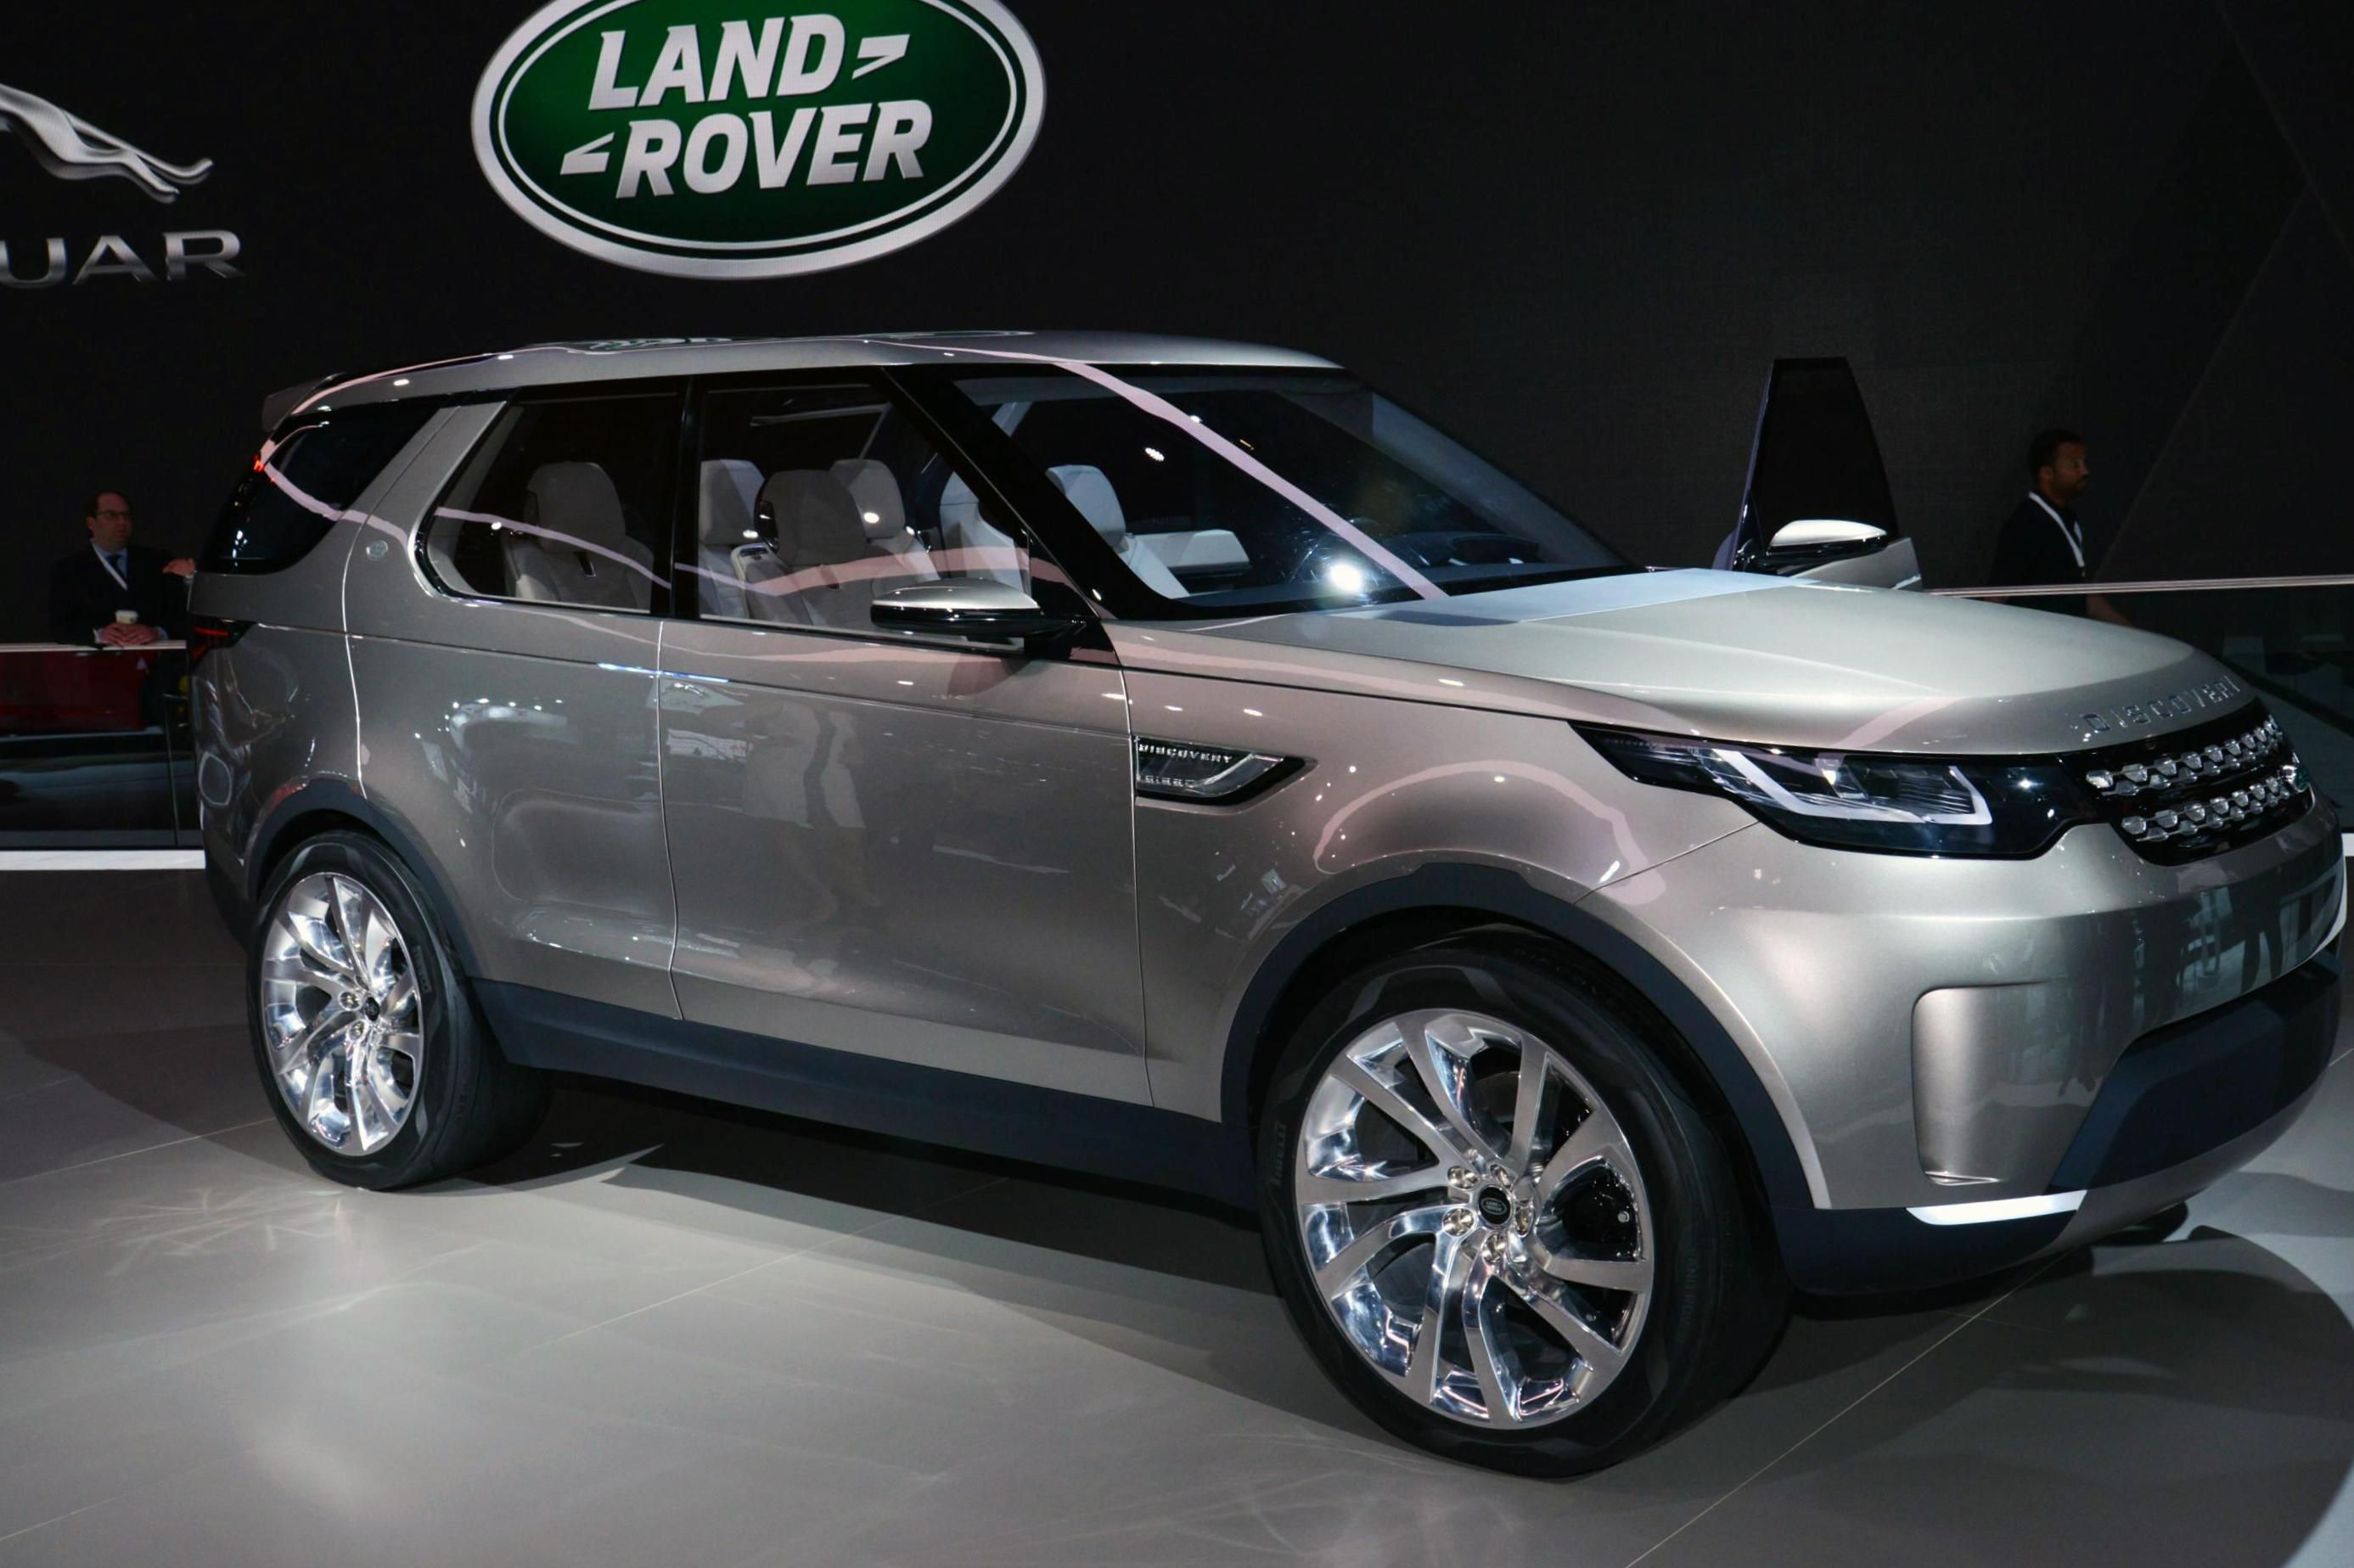 Land Rover Discovery Sport Photos And Specs Photo Discovery Sport Land Rover Prices And 29 Perfect Land Rover Discovery Sport Land Rover Land Rover Discovery